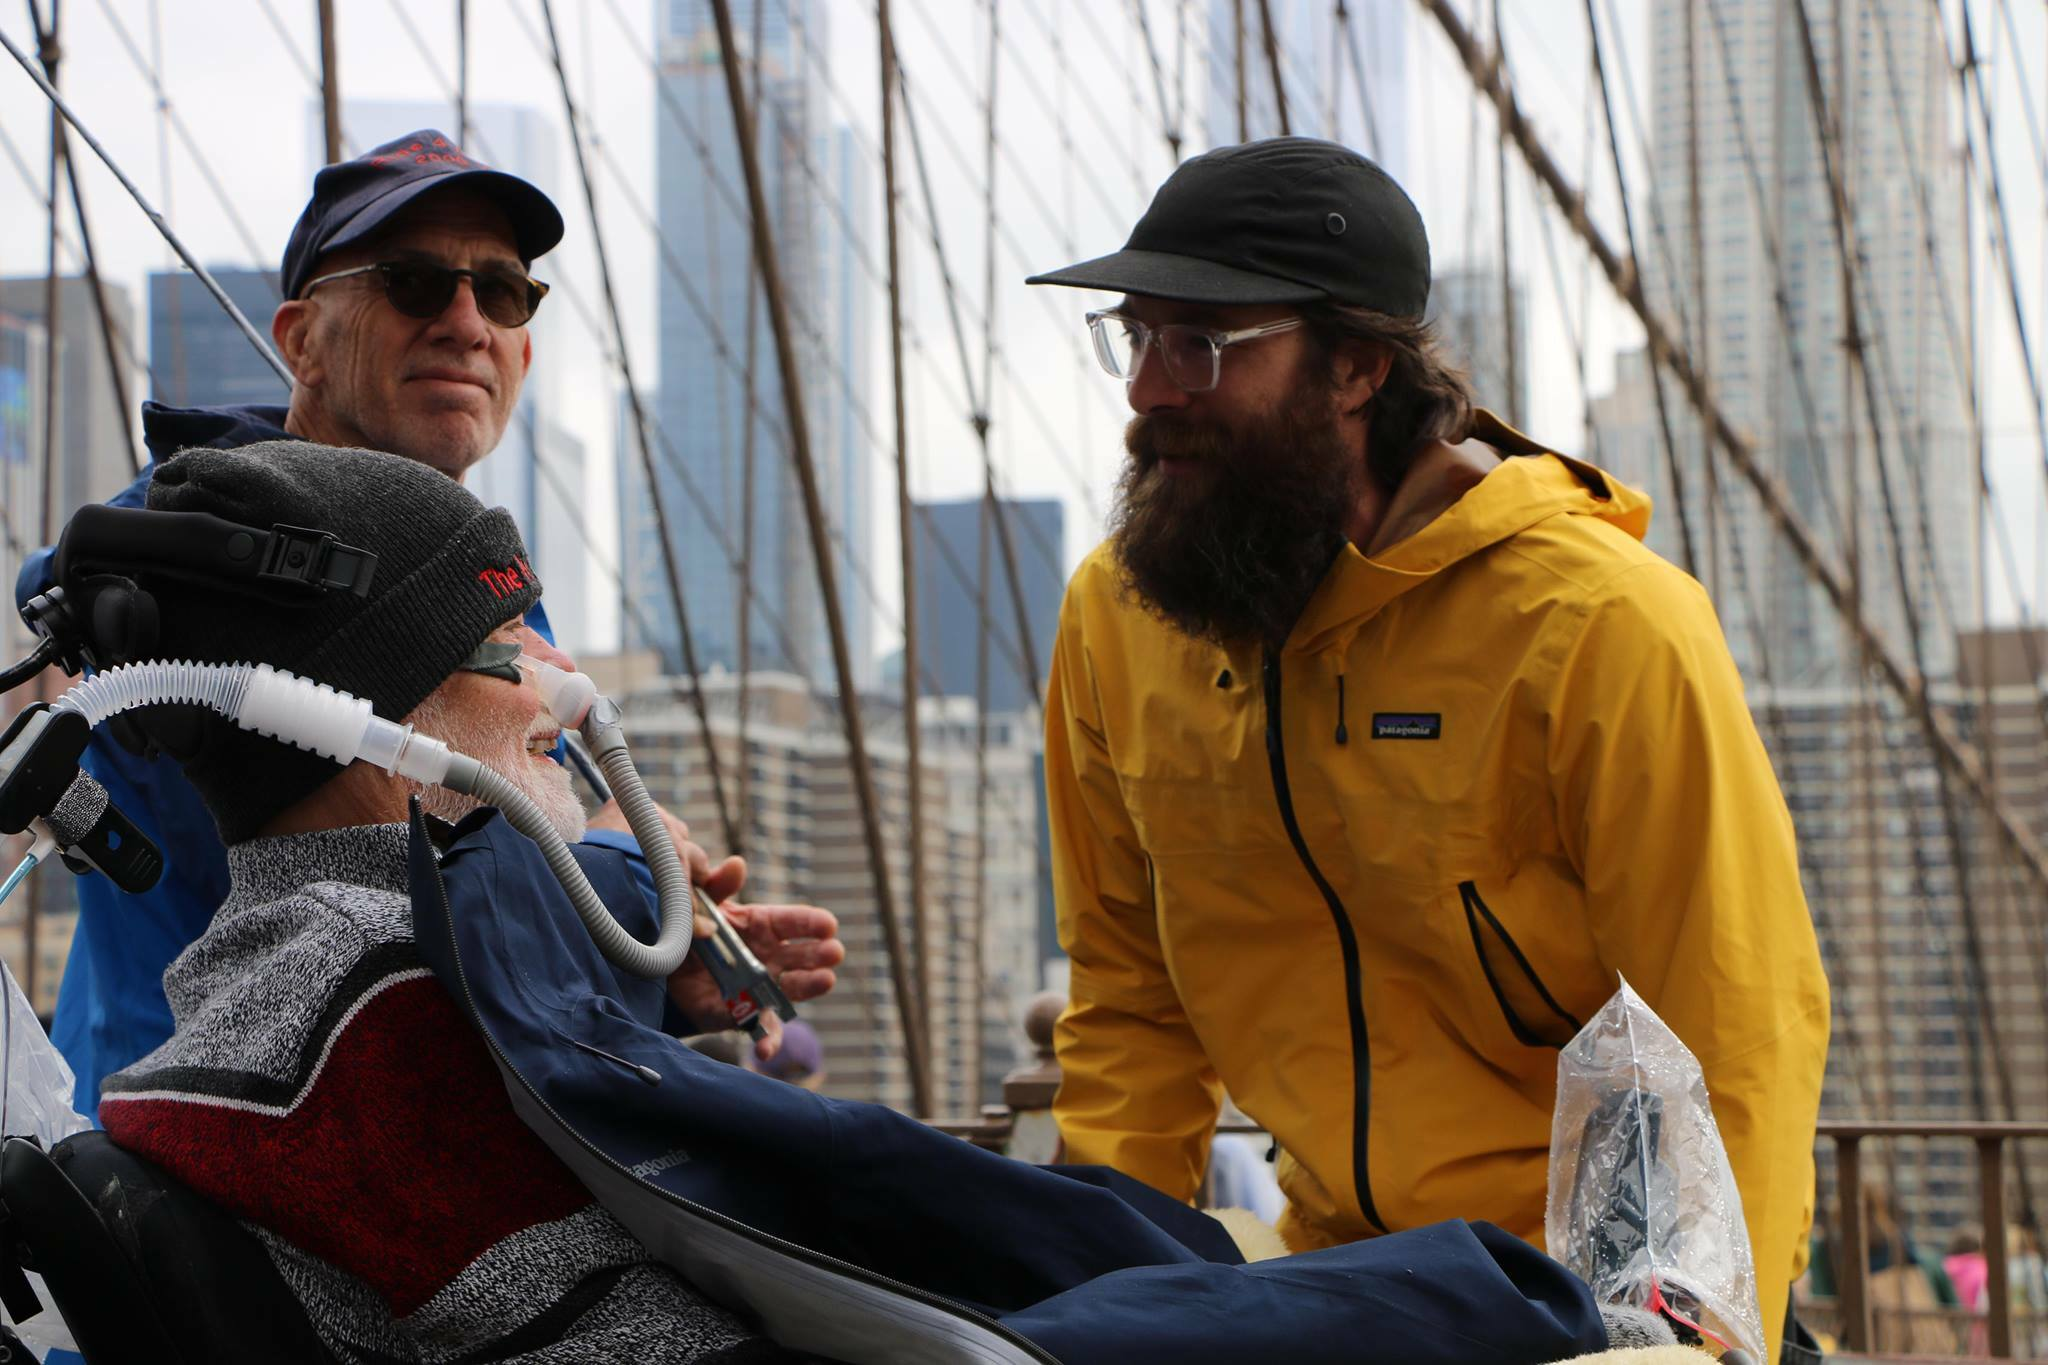 Christopher Pendergast speaks with his son, Buddy, during the 2018 ALS Ride for Life.